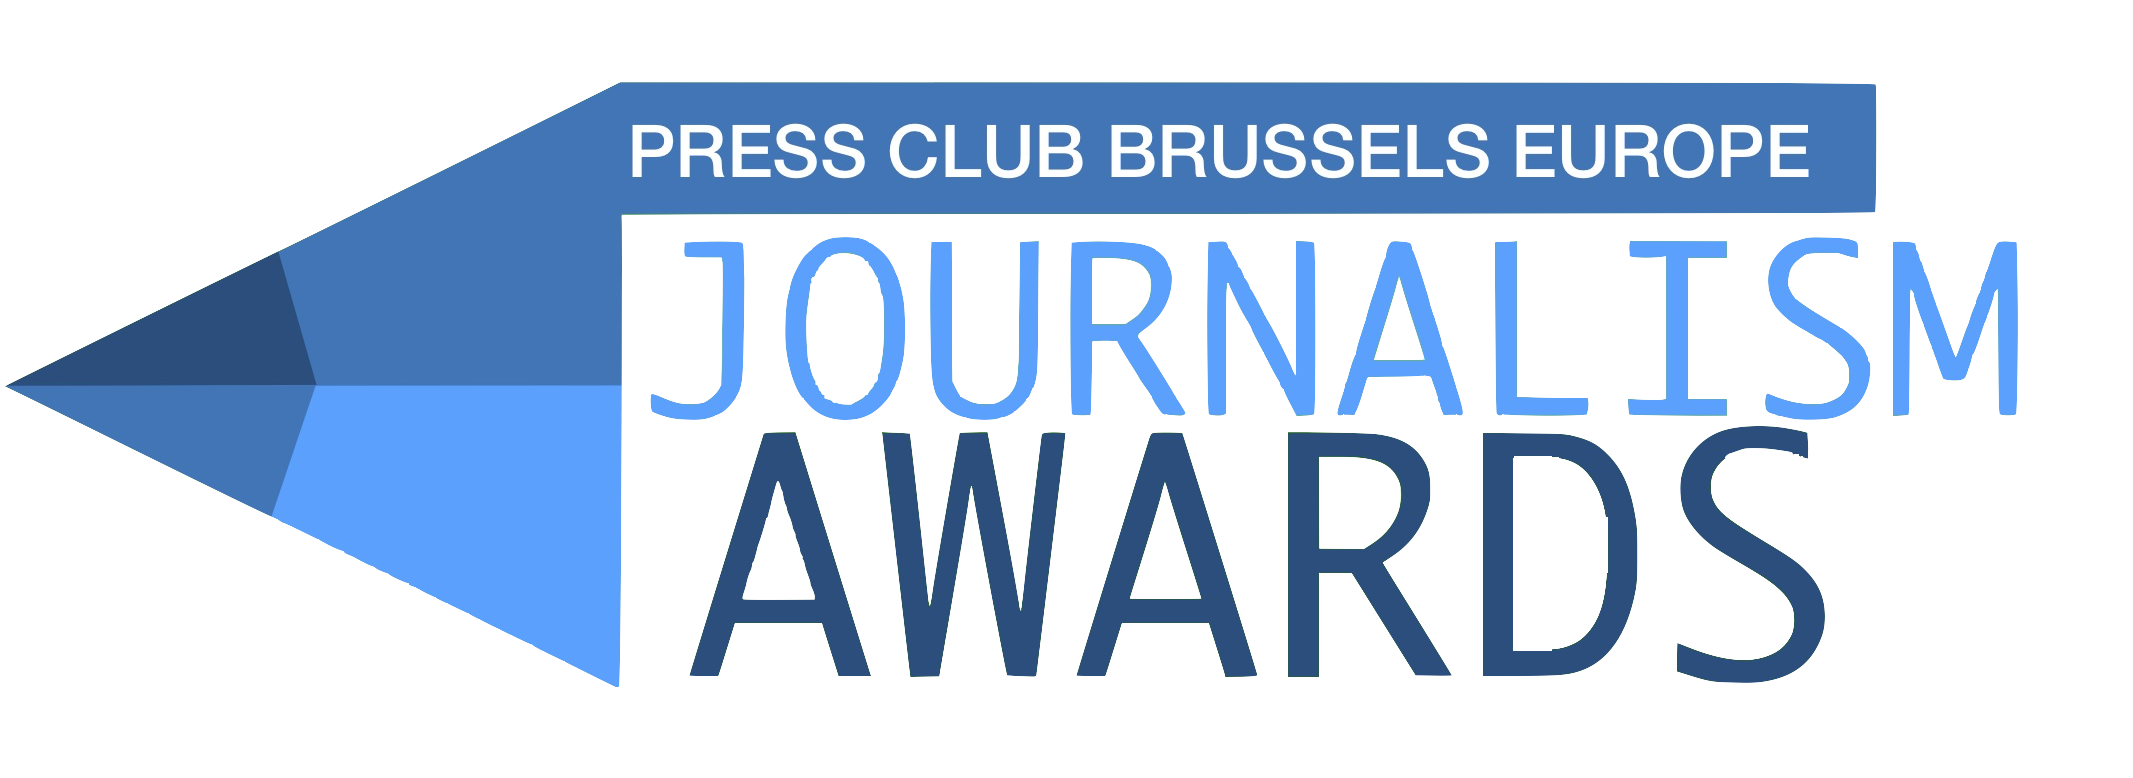 Press Club Brussels Europe | Joint initiative of the